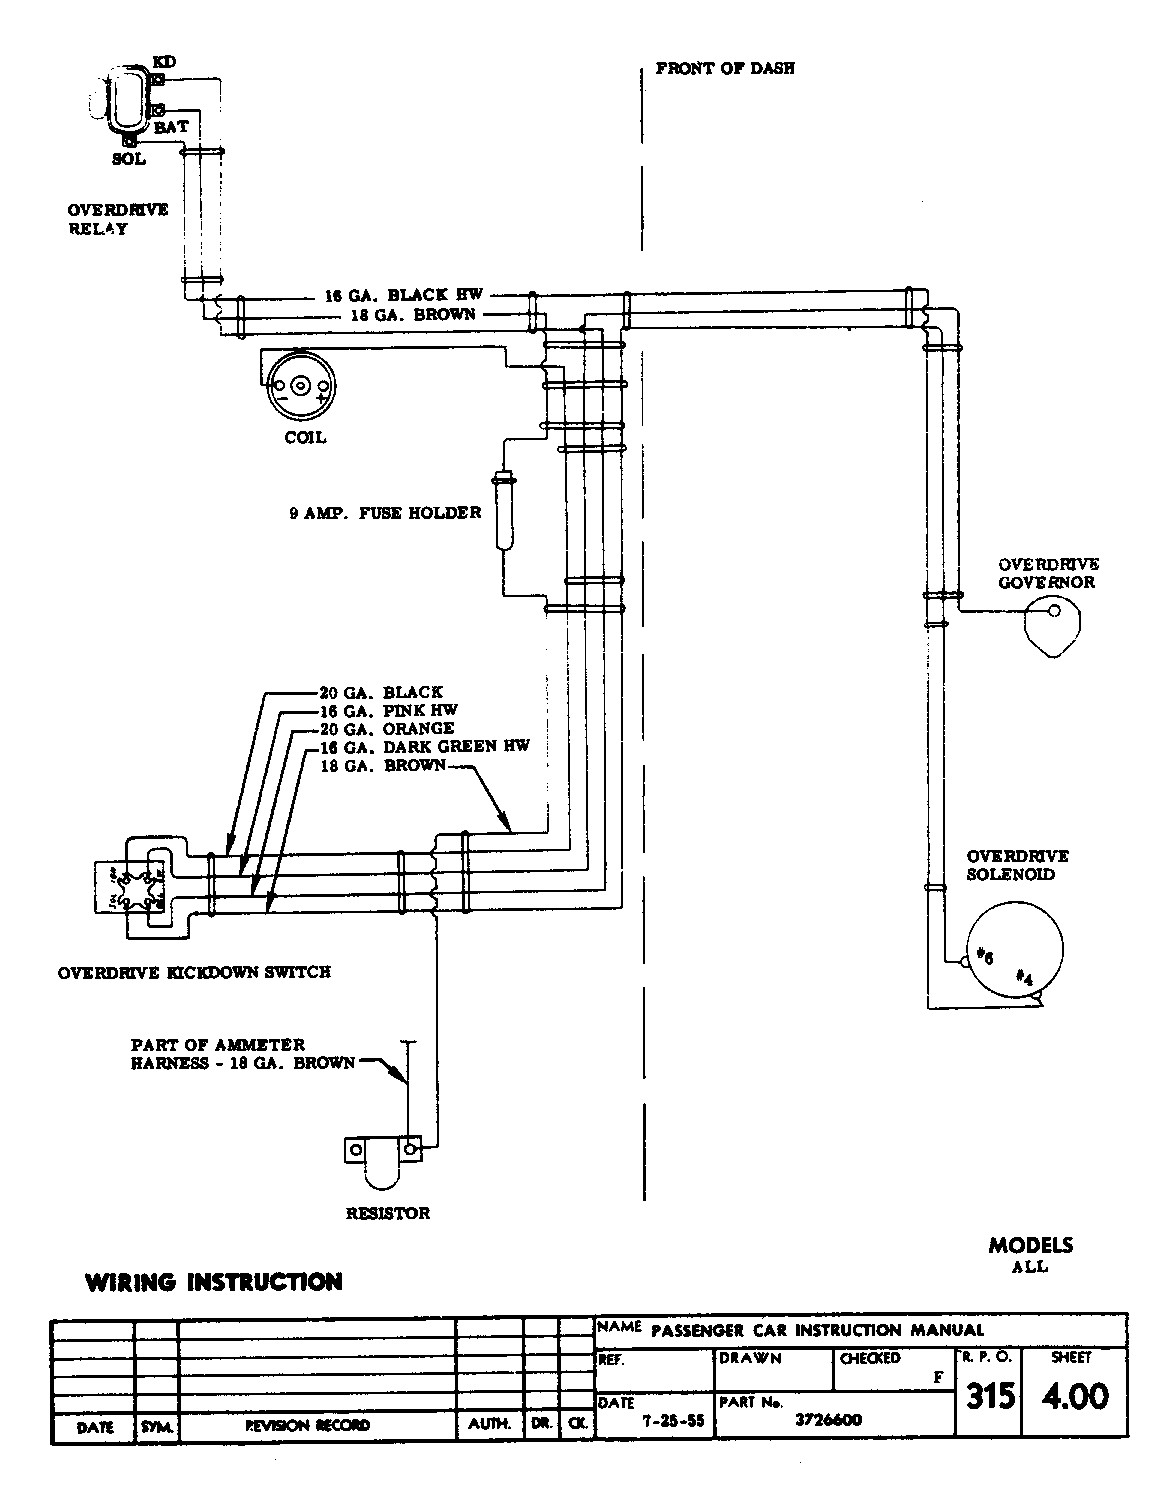 1955 Chevy Voltage Regulator Wiring Diagram Explained Diagrams 1938 Ford 1957 Electrical External